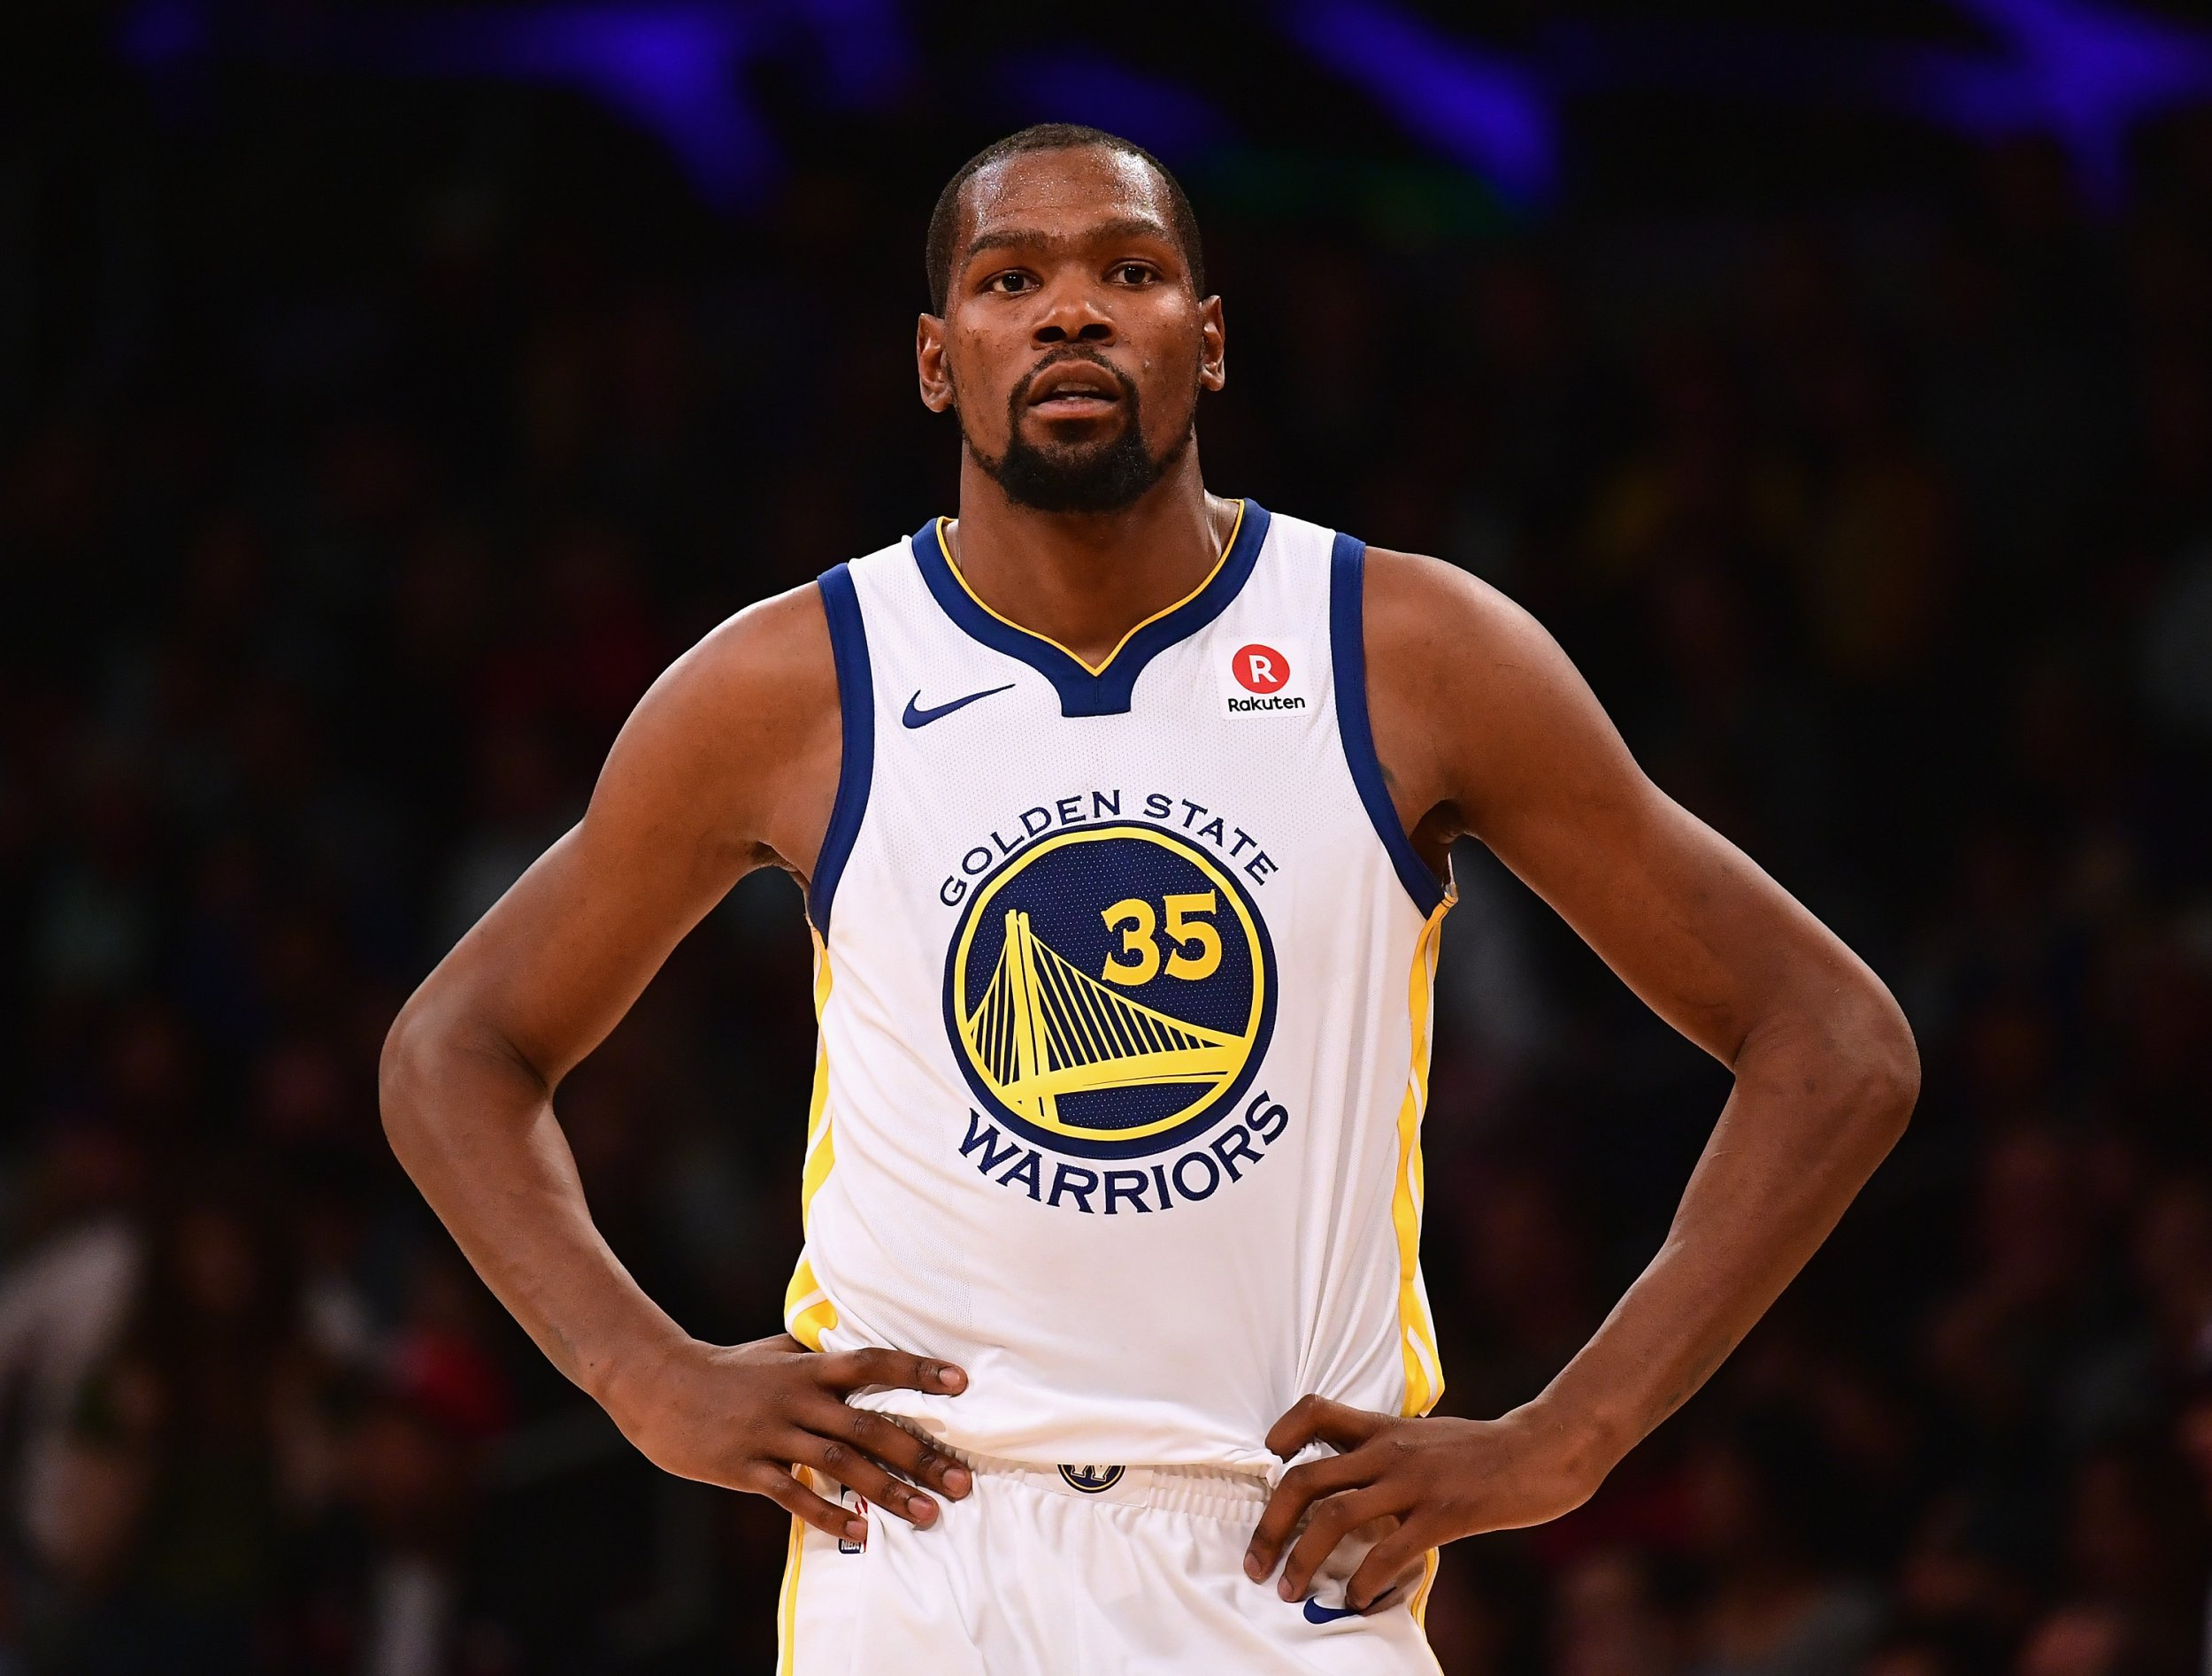 Watch: Kevin Durant Got Tossed from Warriors-Pelicans—Is Bad Behavior Golden State's New Normal?